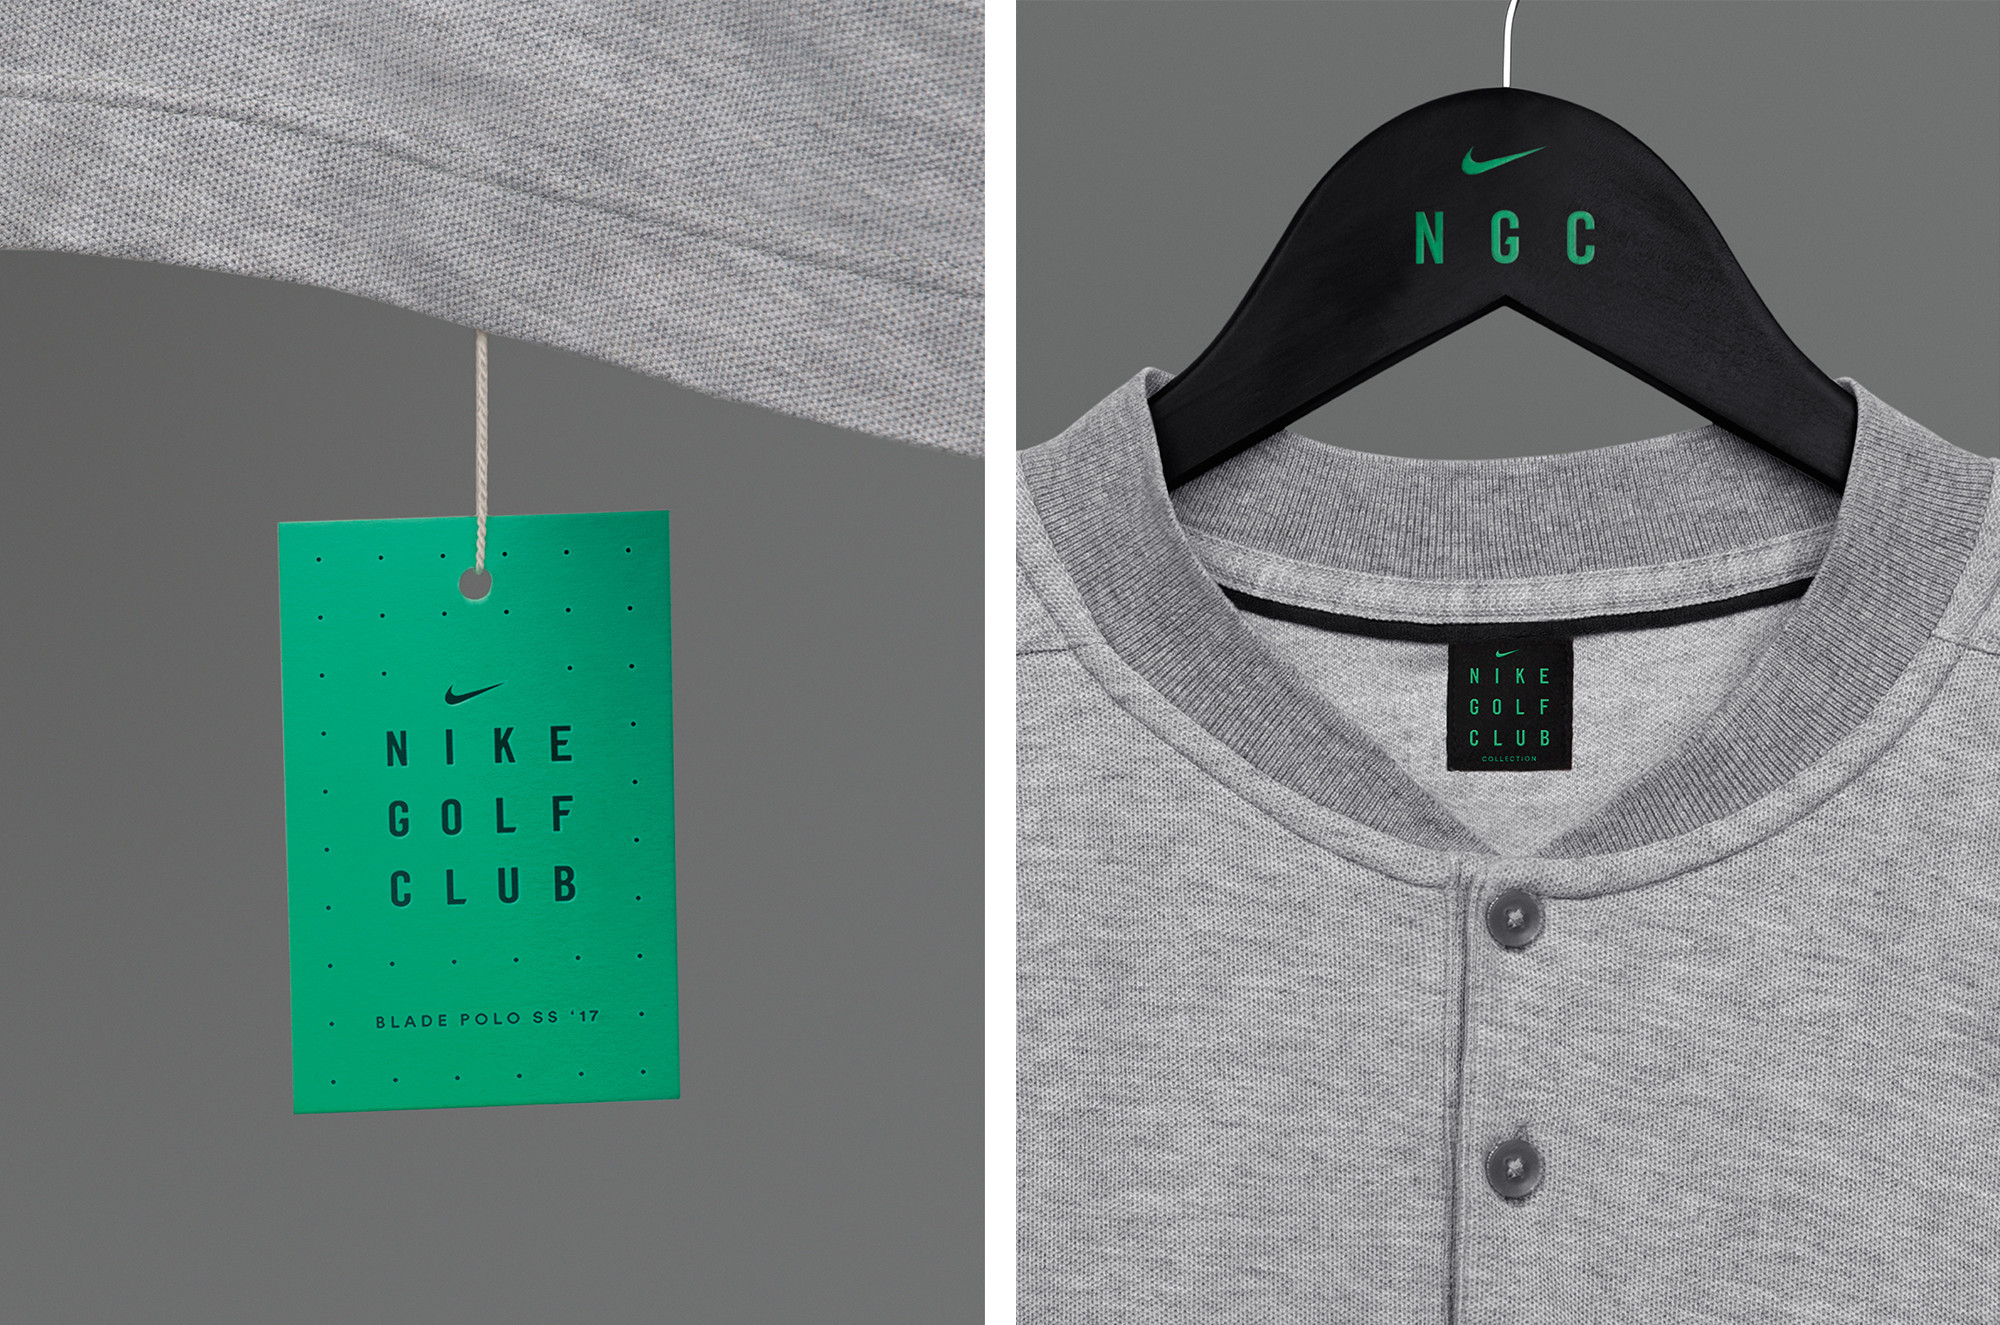 ae3d2e161e4 Nike Golf Club on Behance